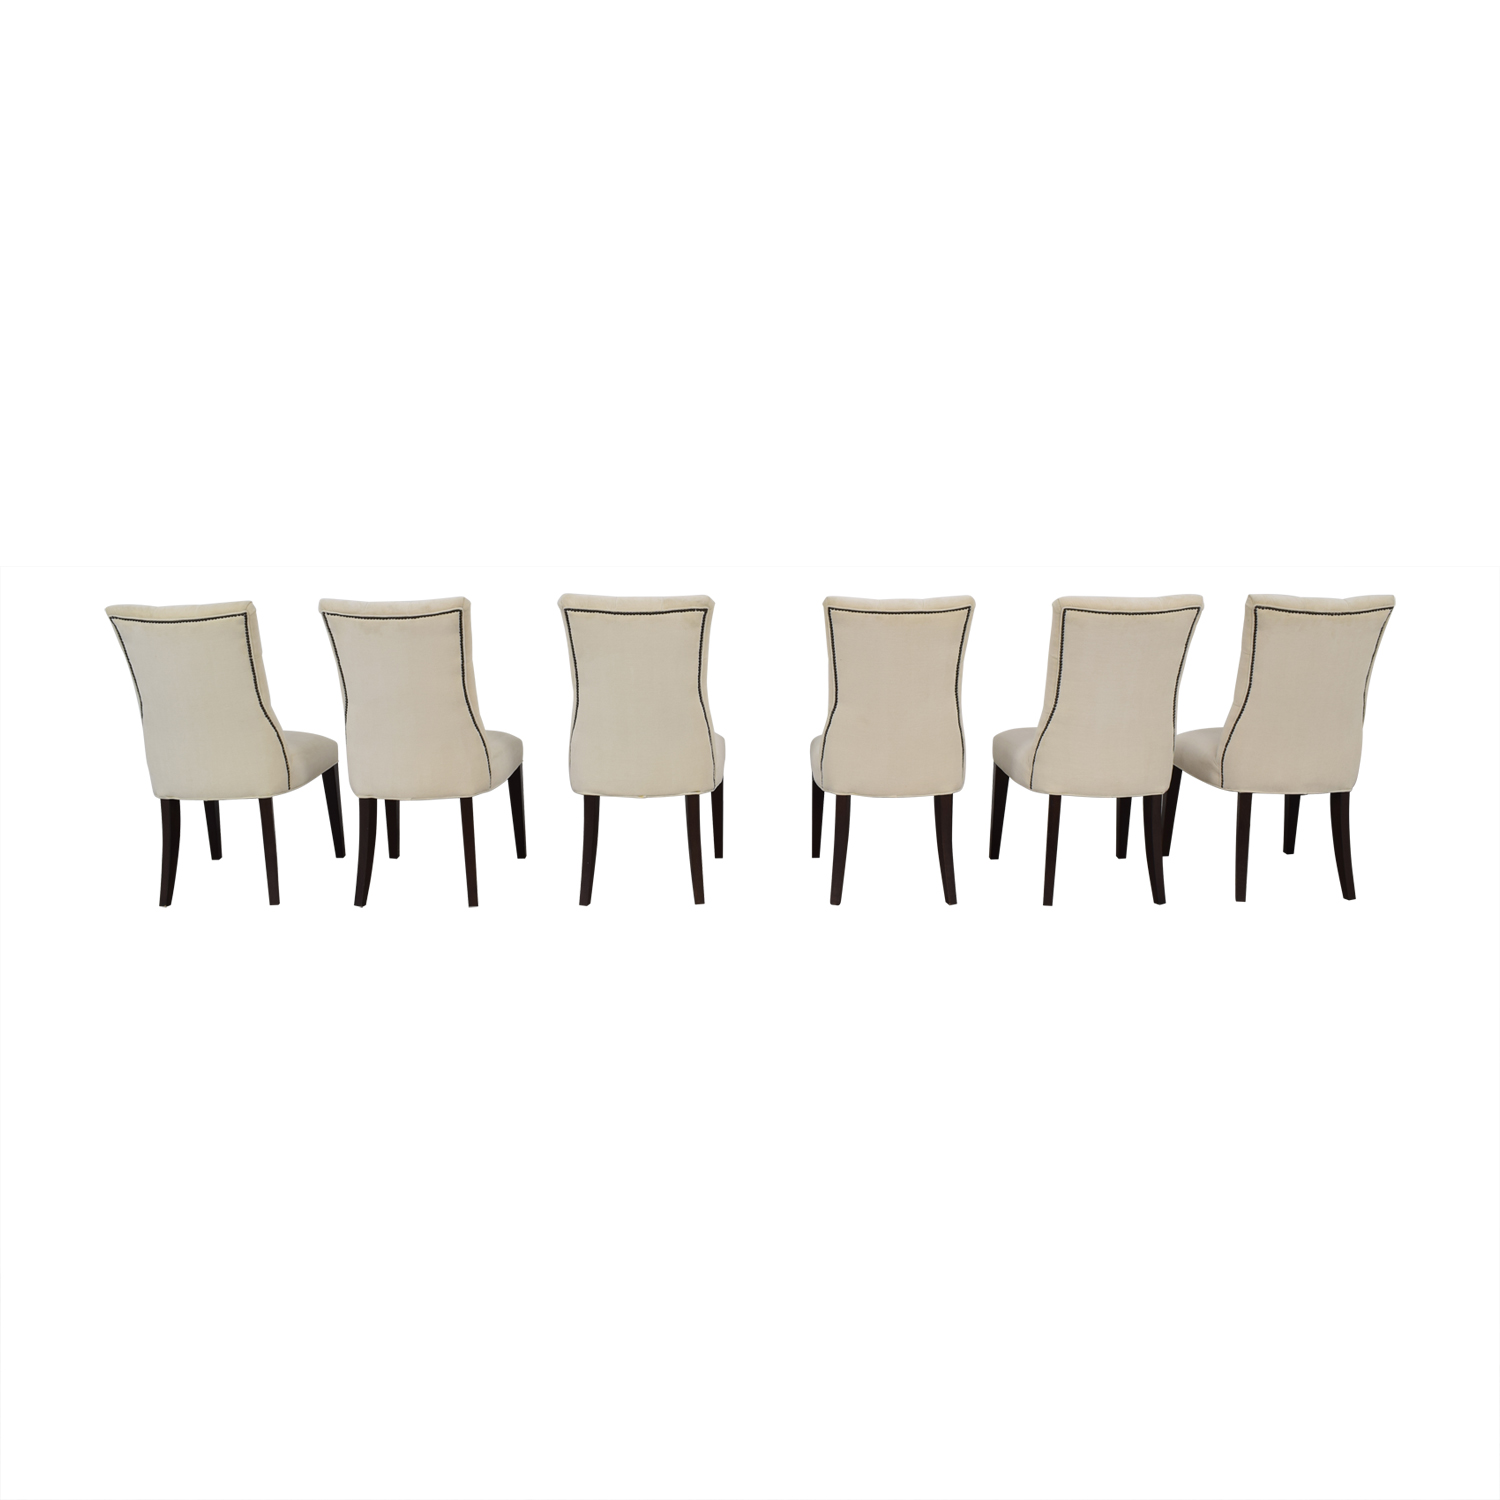 Restoration Hardware Restoration Hardware Martine Tufted Beige Dining Chairs nj